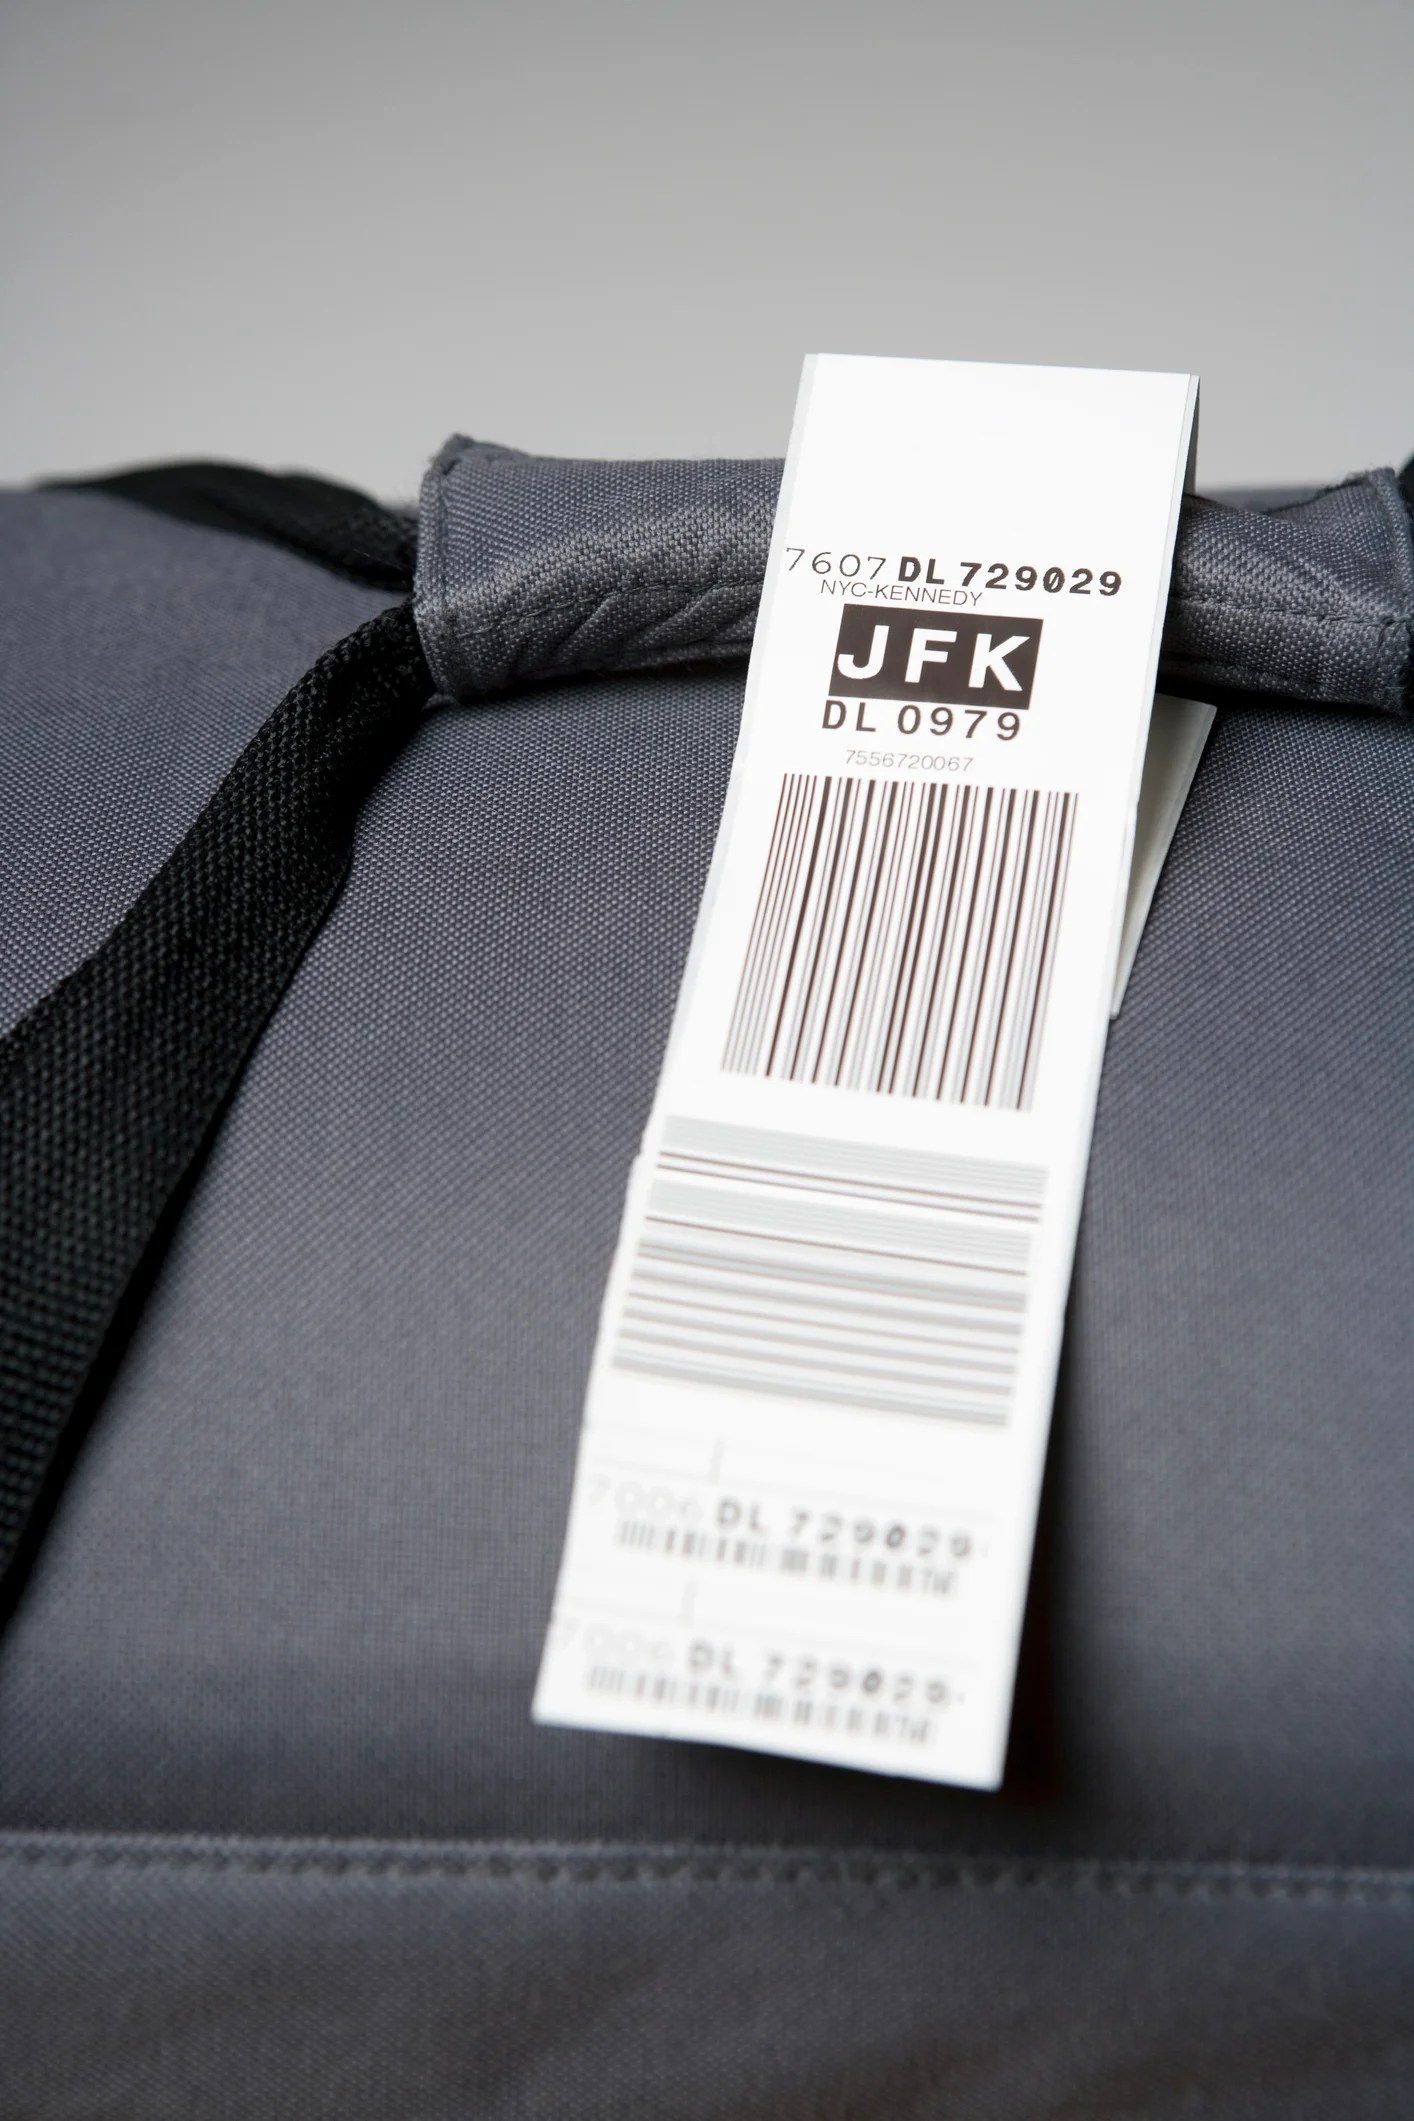 must i pay with my airline credit card for a free checked bag